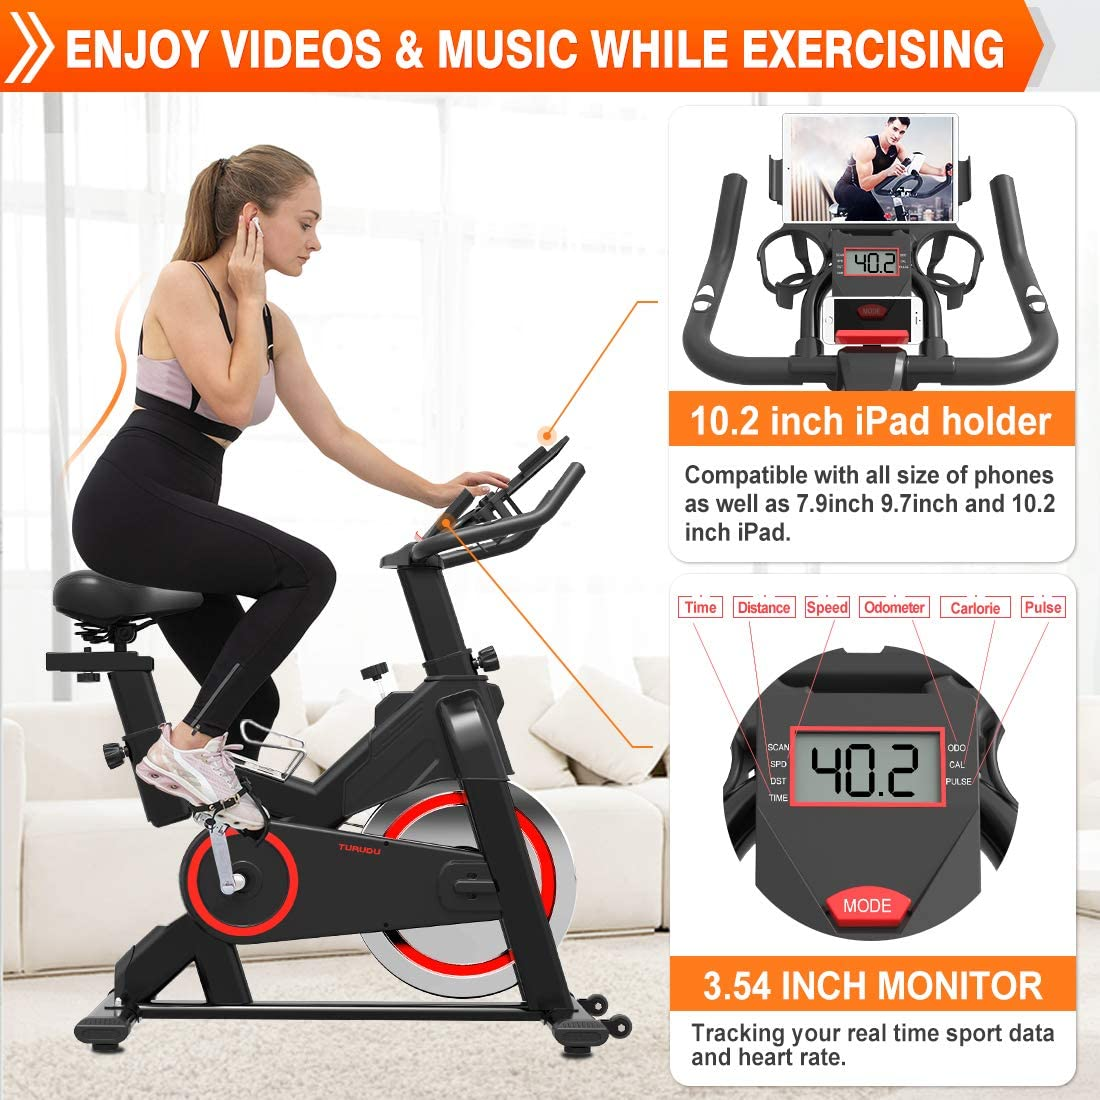 TURUDU Spin Bike Indoor Cycling Bike Stationary Belt Drive Indoor Exercise Bike for Home Cardio Gym with 35 LBS Upgraded Solid Flywheel LCD Display /& Comfortable Seat Cushion